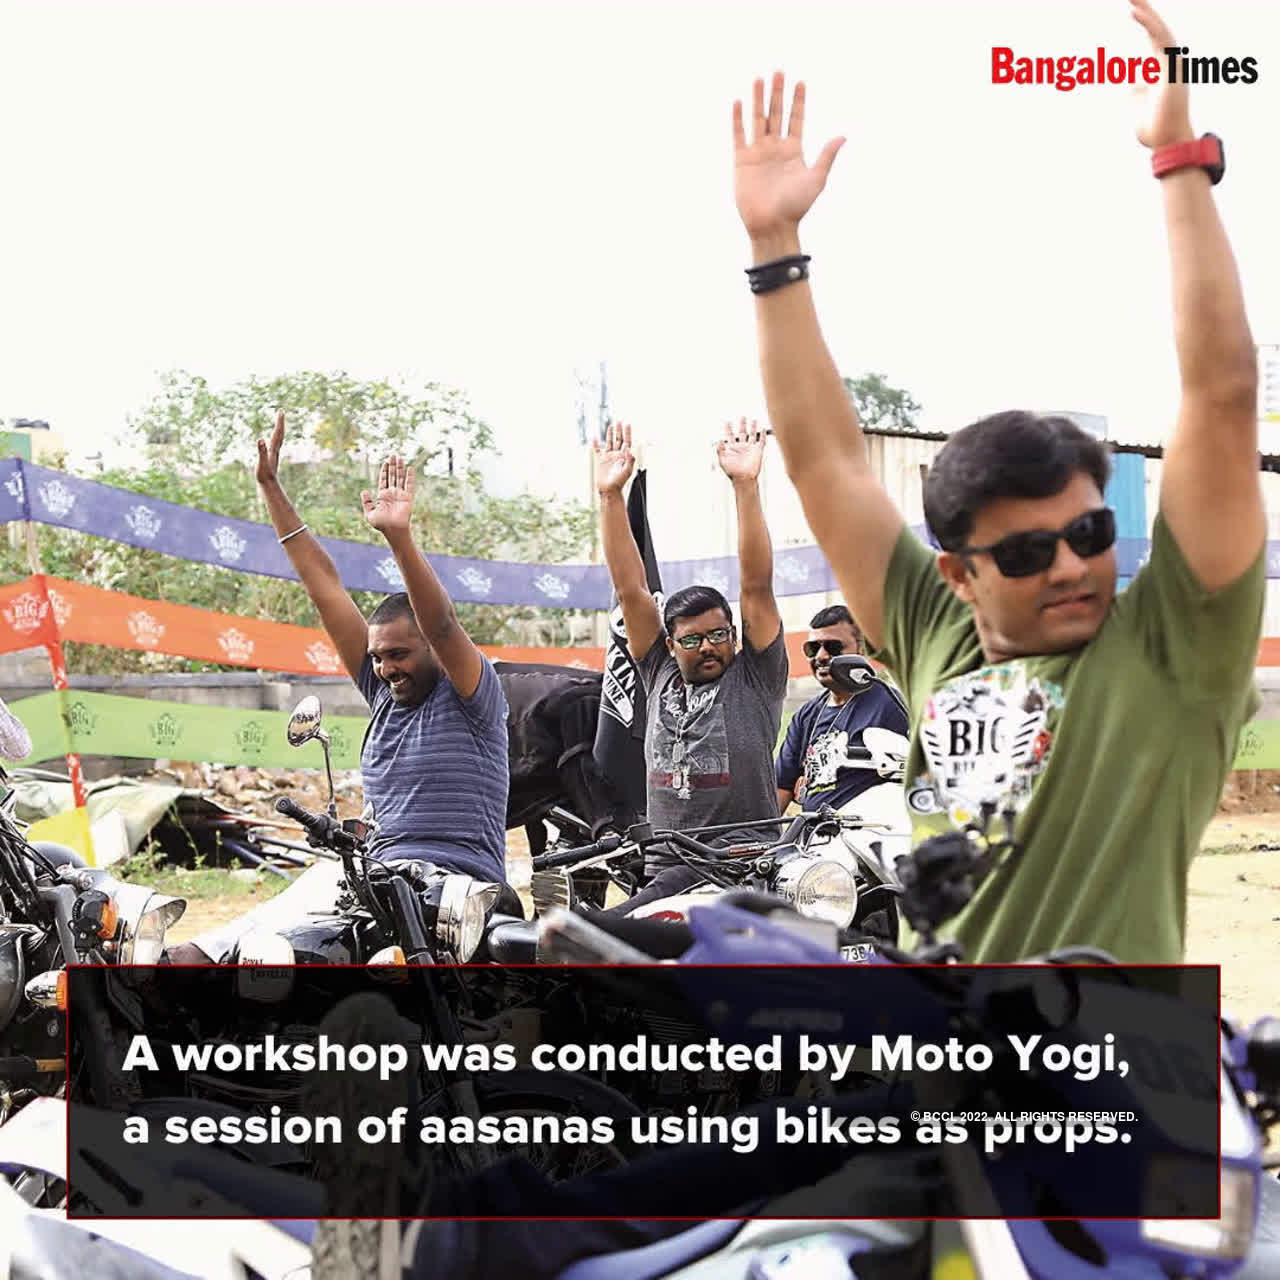 Bengalureans try yoga on wheels